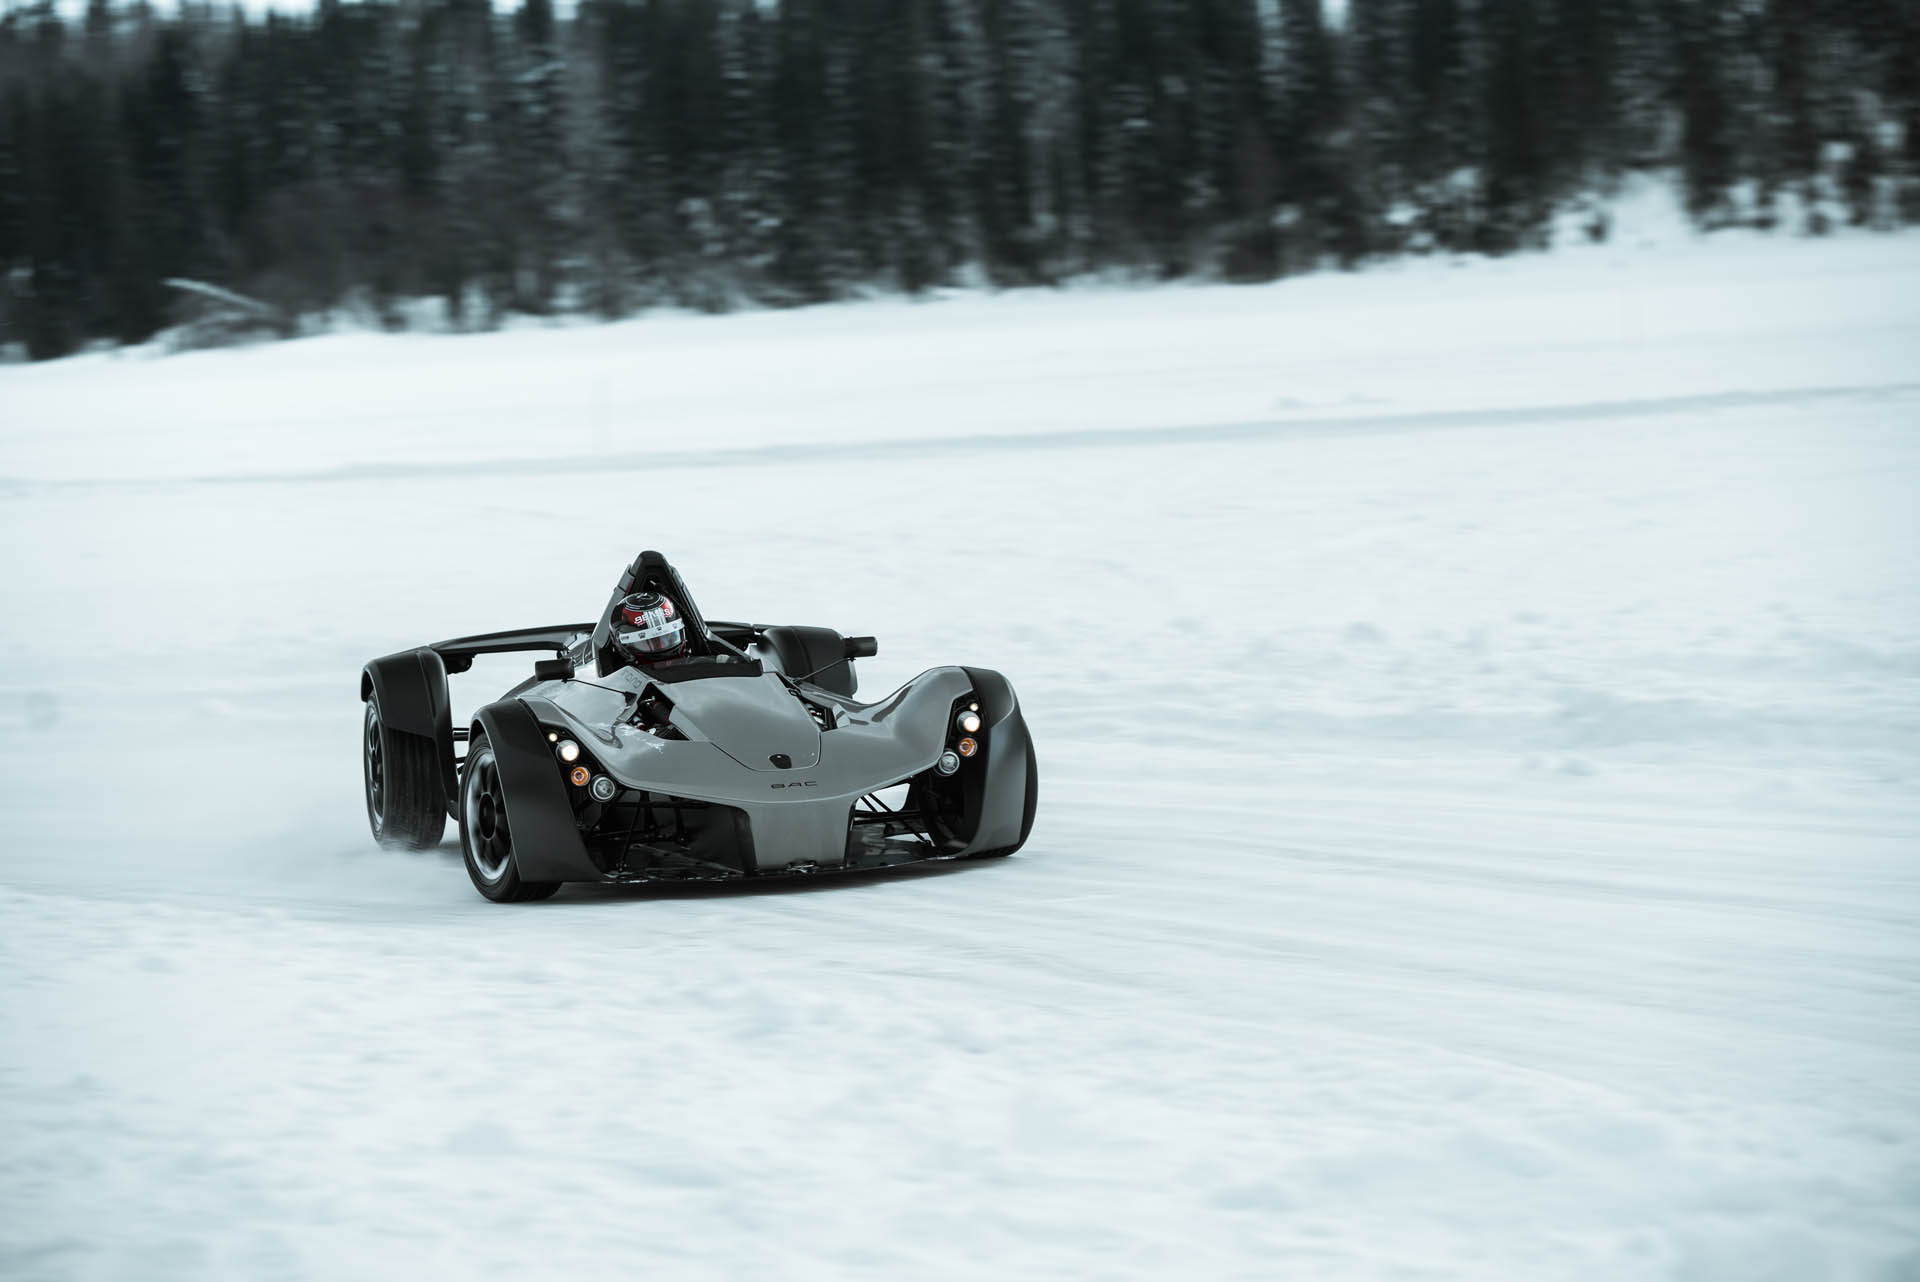 BAC_Mono_Ice_Driving_Experience_2018_0011